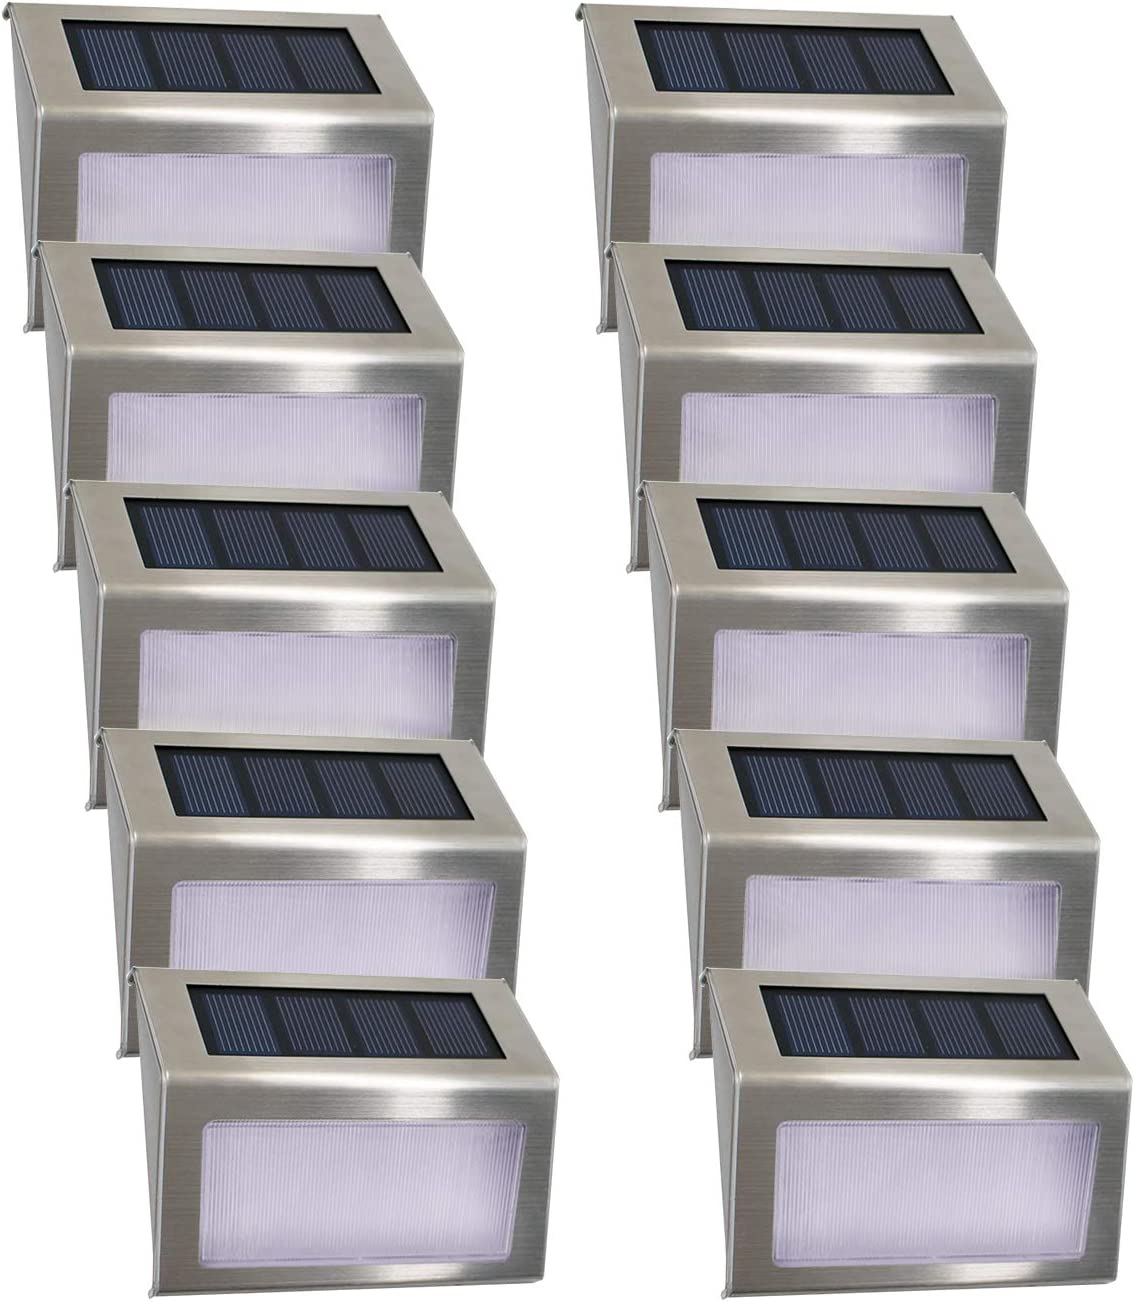 Fence 2 x Stainless Steel Solar Powered Led Wall Door Step Lights Outdoor